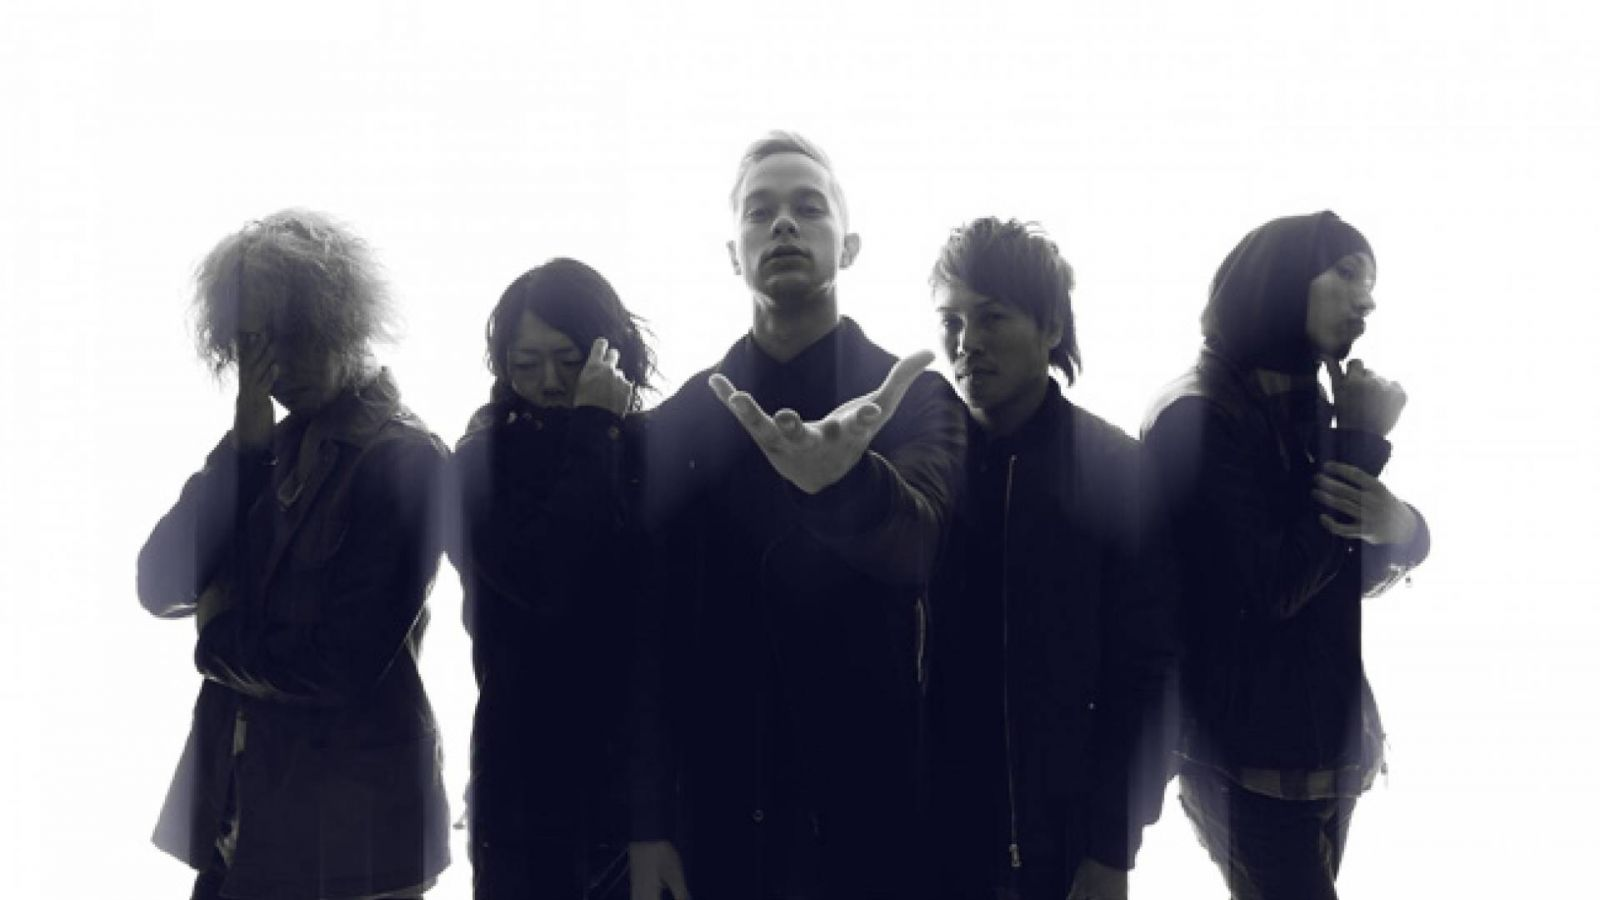 coldrain © GIL SOUNDWORKS, all rights reserved